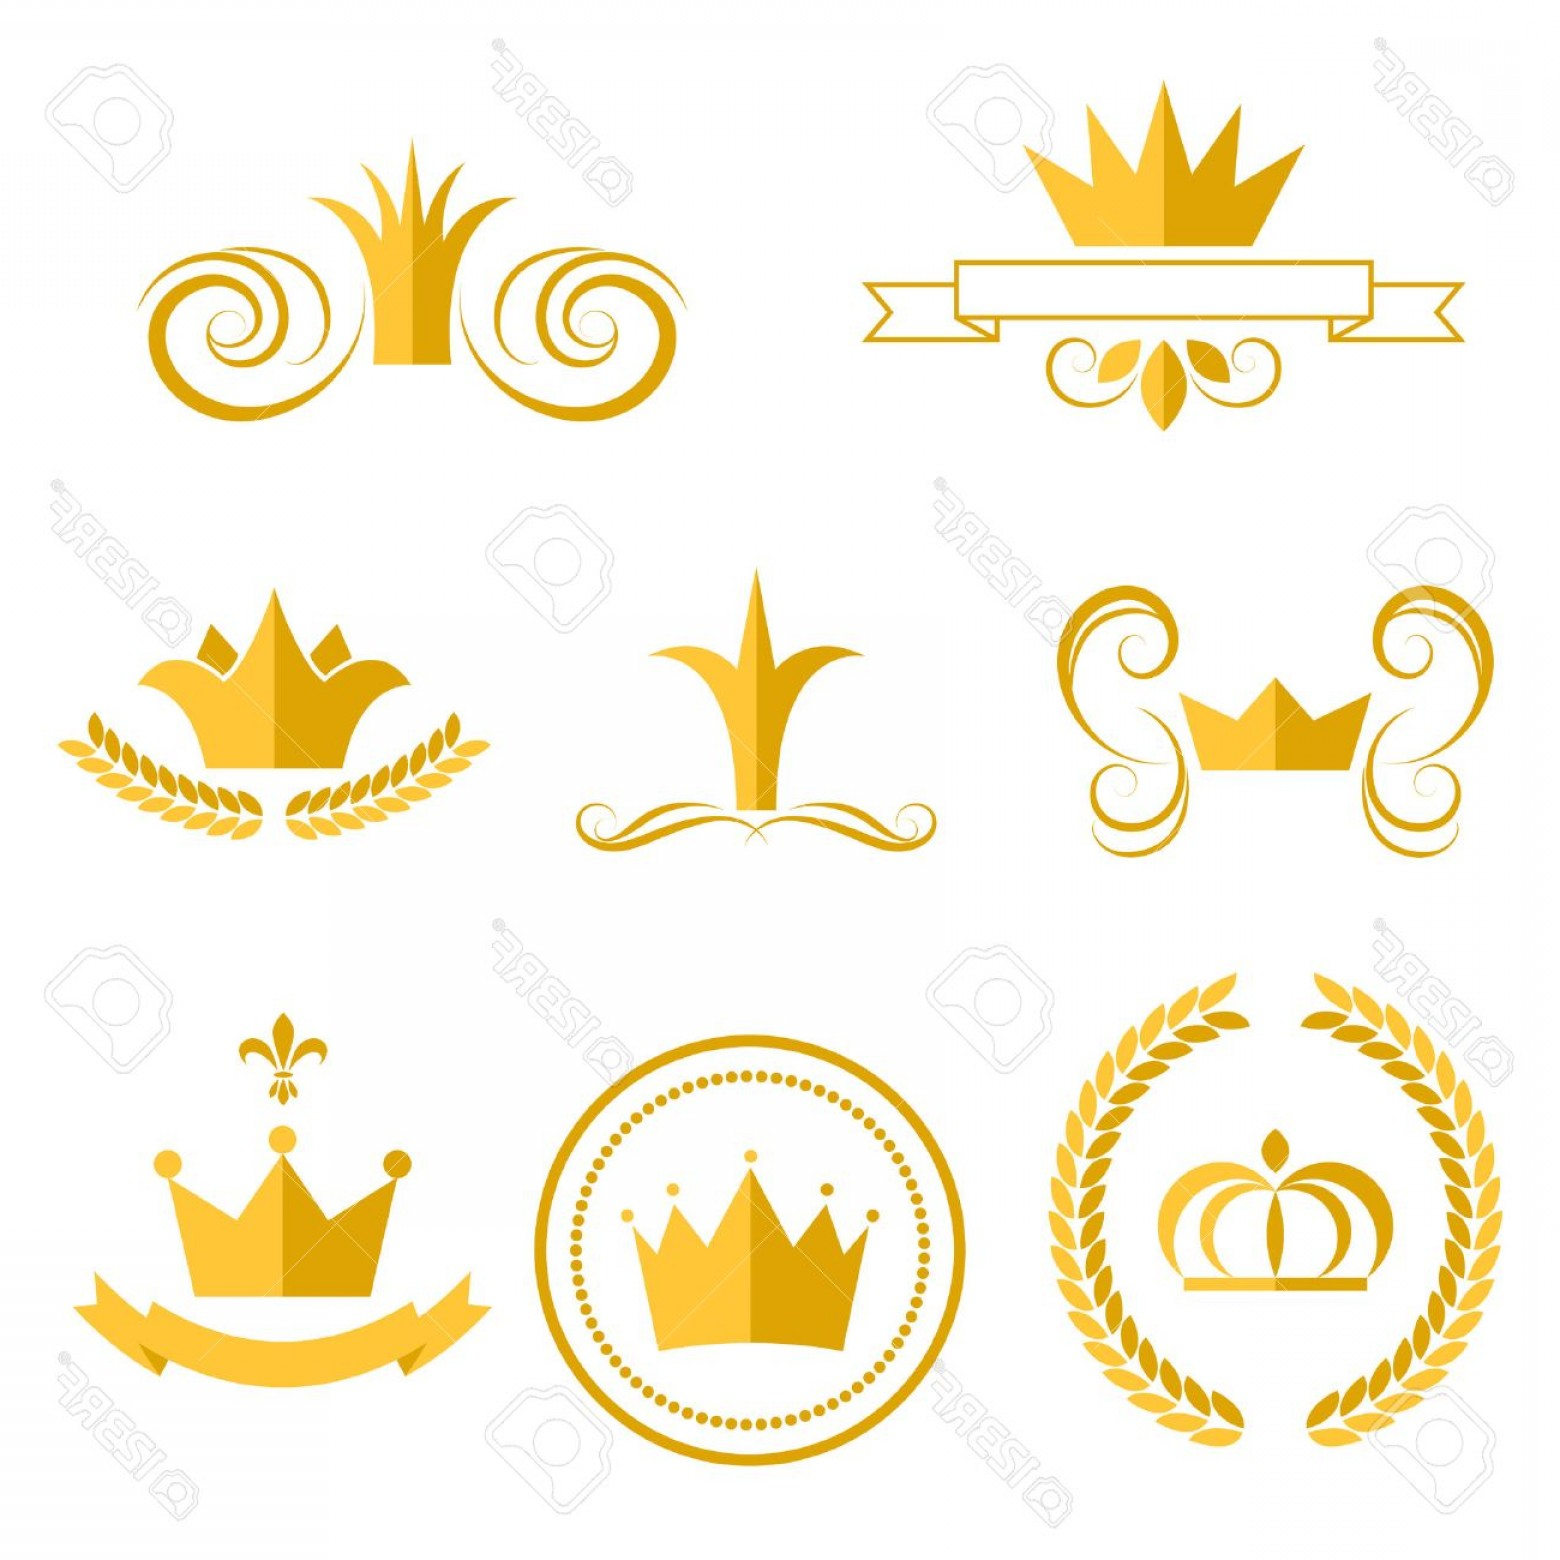 Crown Vector Clip Art: Photostock Vector Gold Crown Logos And Badges Clip Art Vector Set King Or Queen Crowns Flat Style Icons